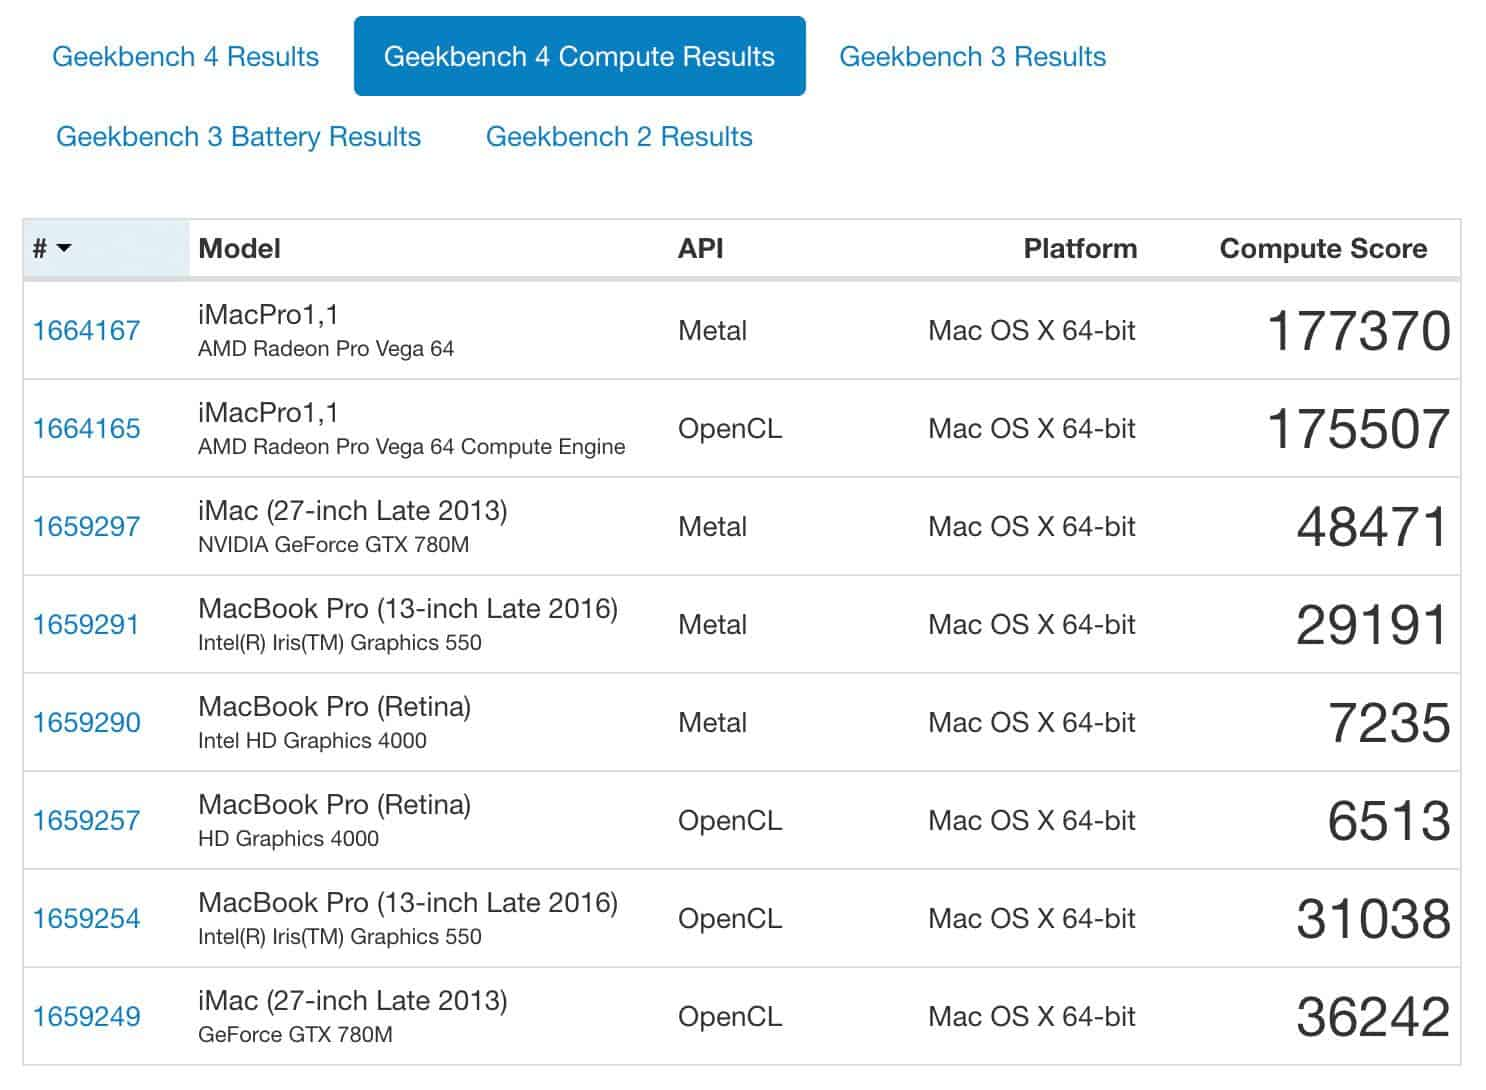 Geekbench Compute Results